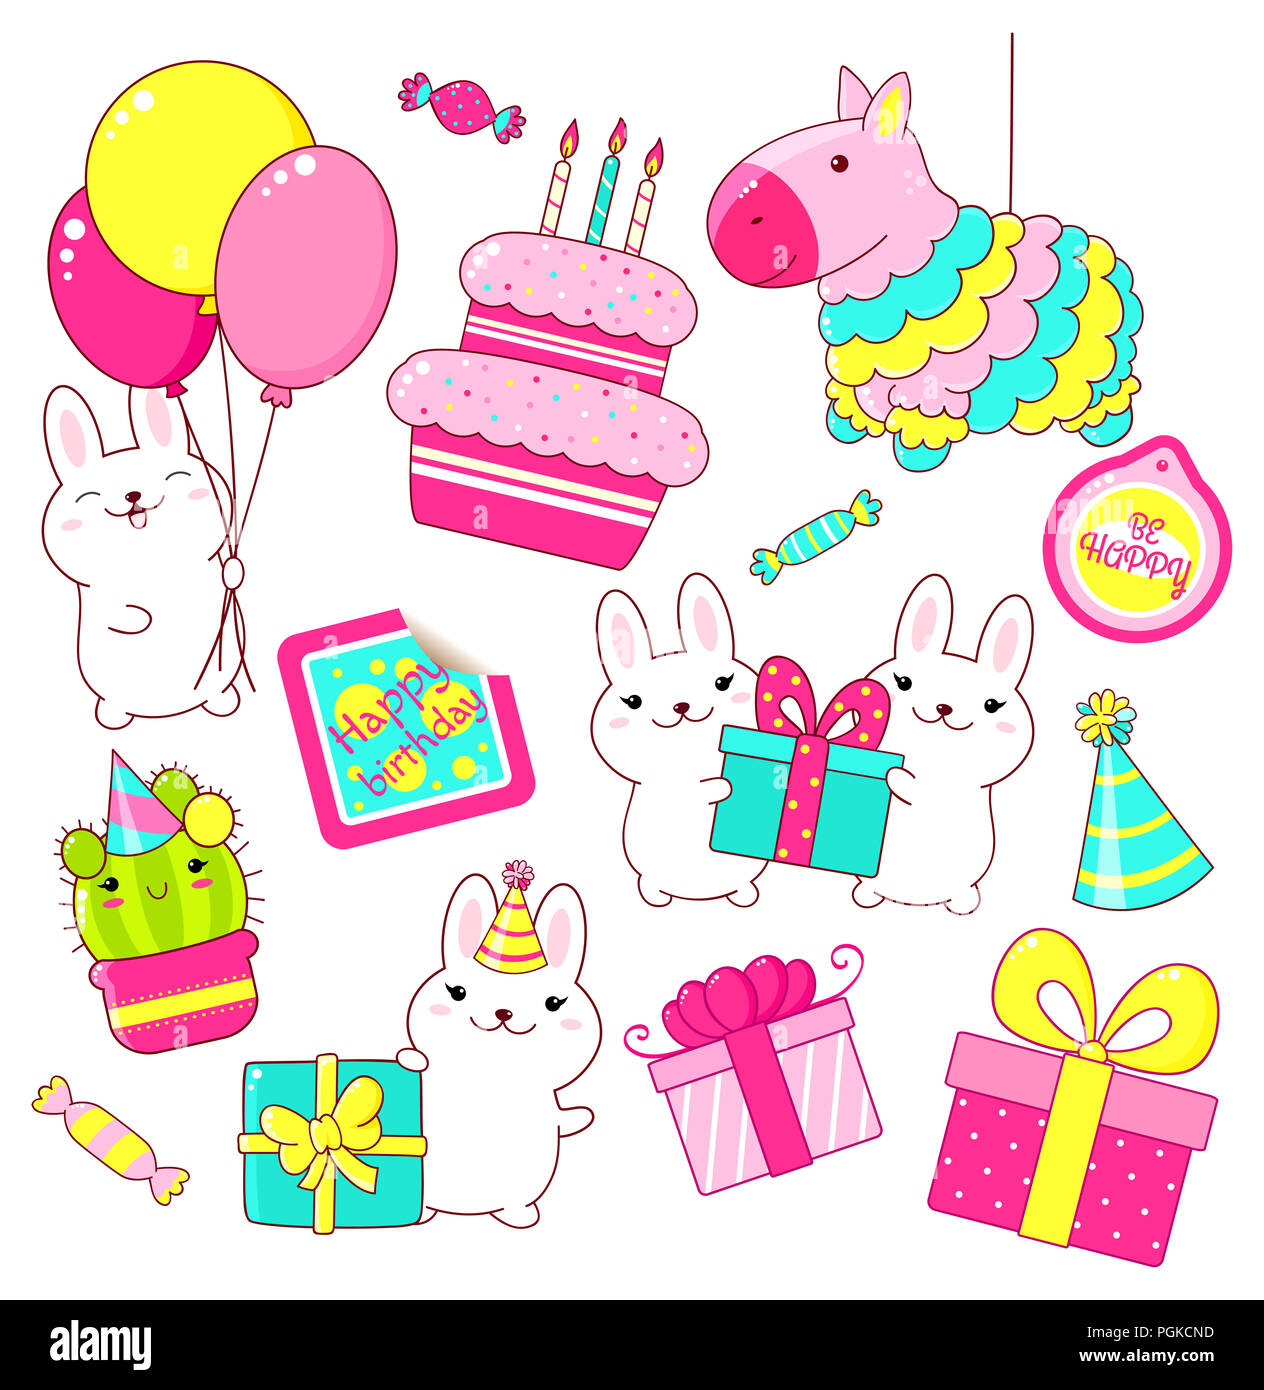 Set Of Cute Birthday Party Icons In Kawaii Style Rabbit With Gift And Balloons Cake Candles Pinata Stack Gifts Candy Sticker W